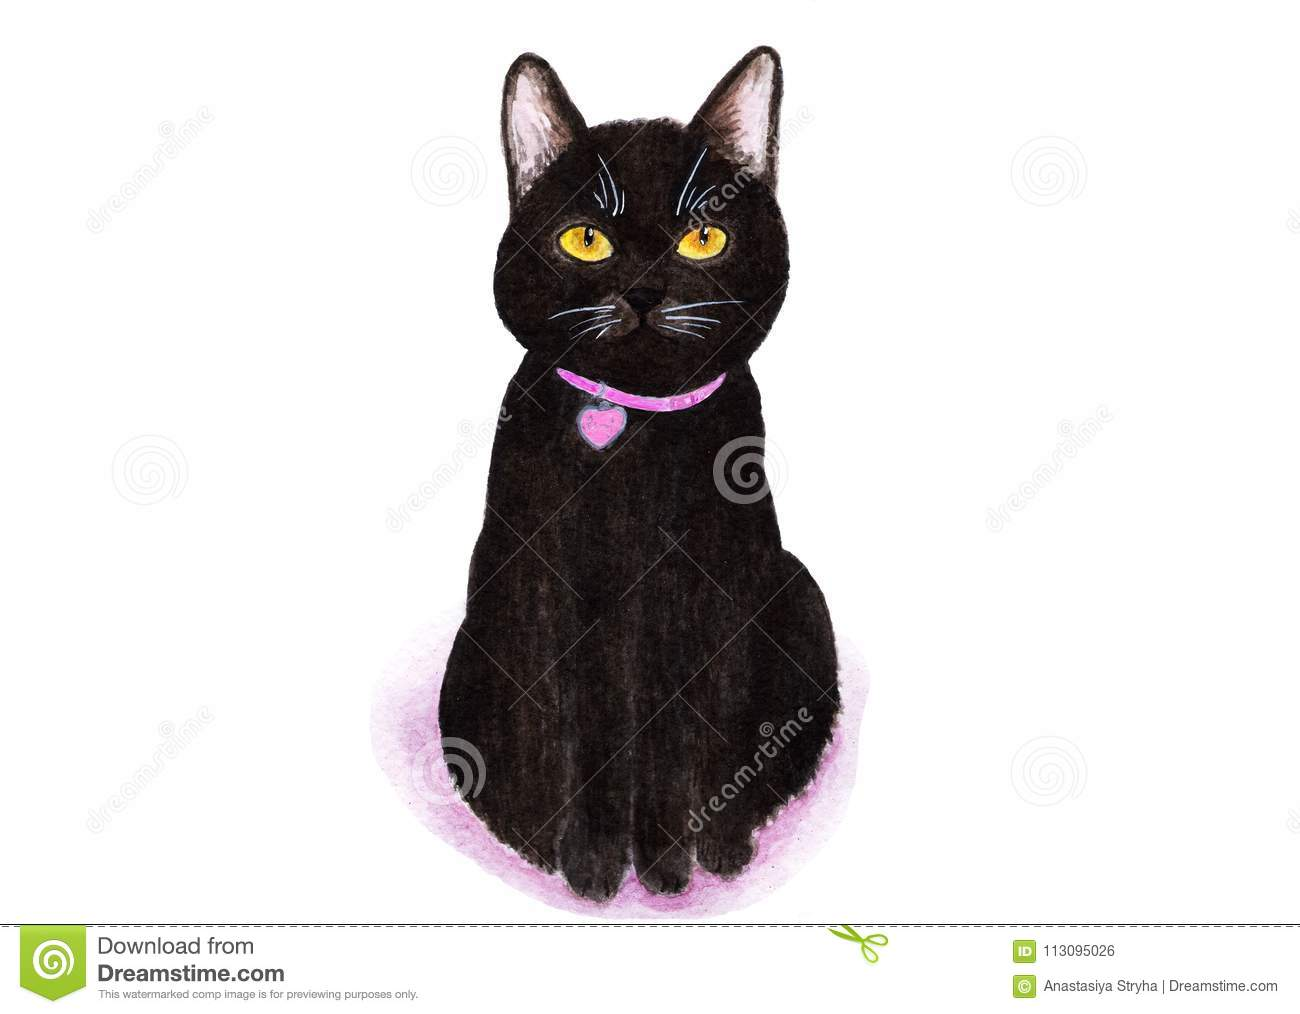 Black cat portrait of a cat on a white background watercolor illustration